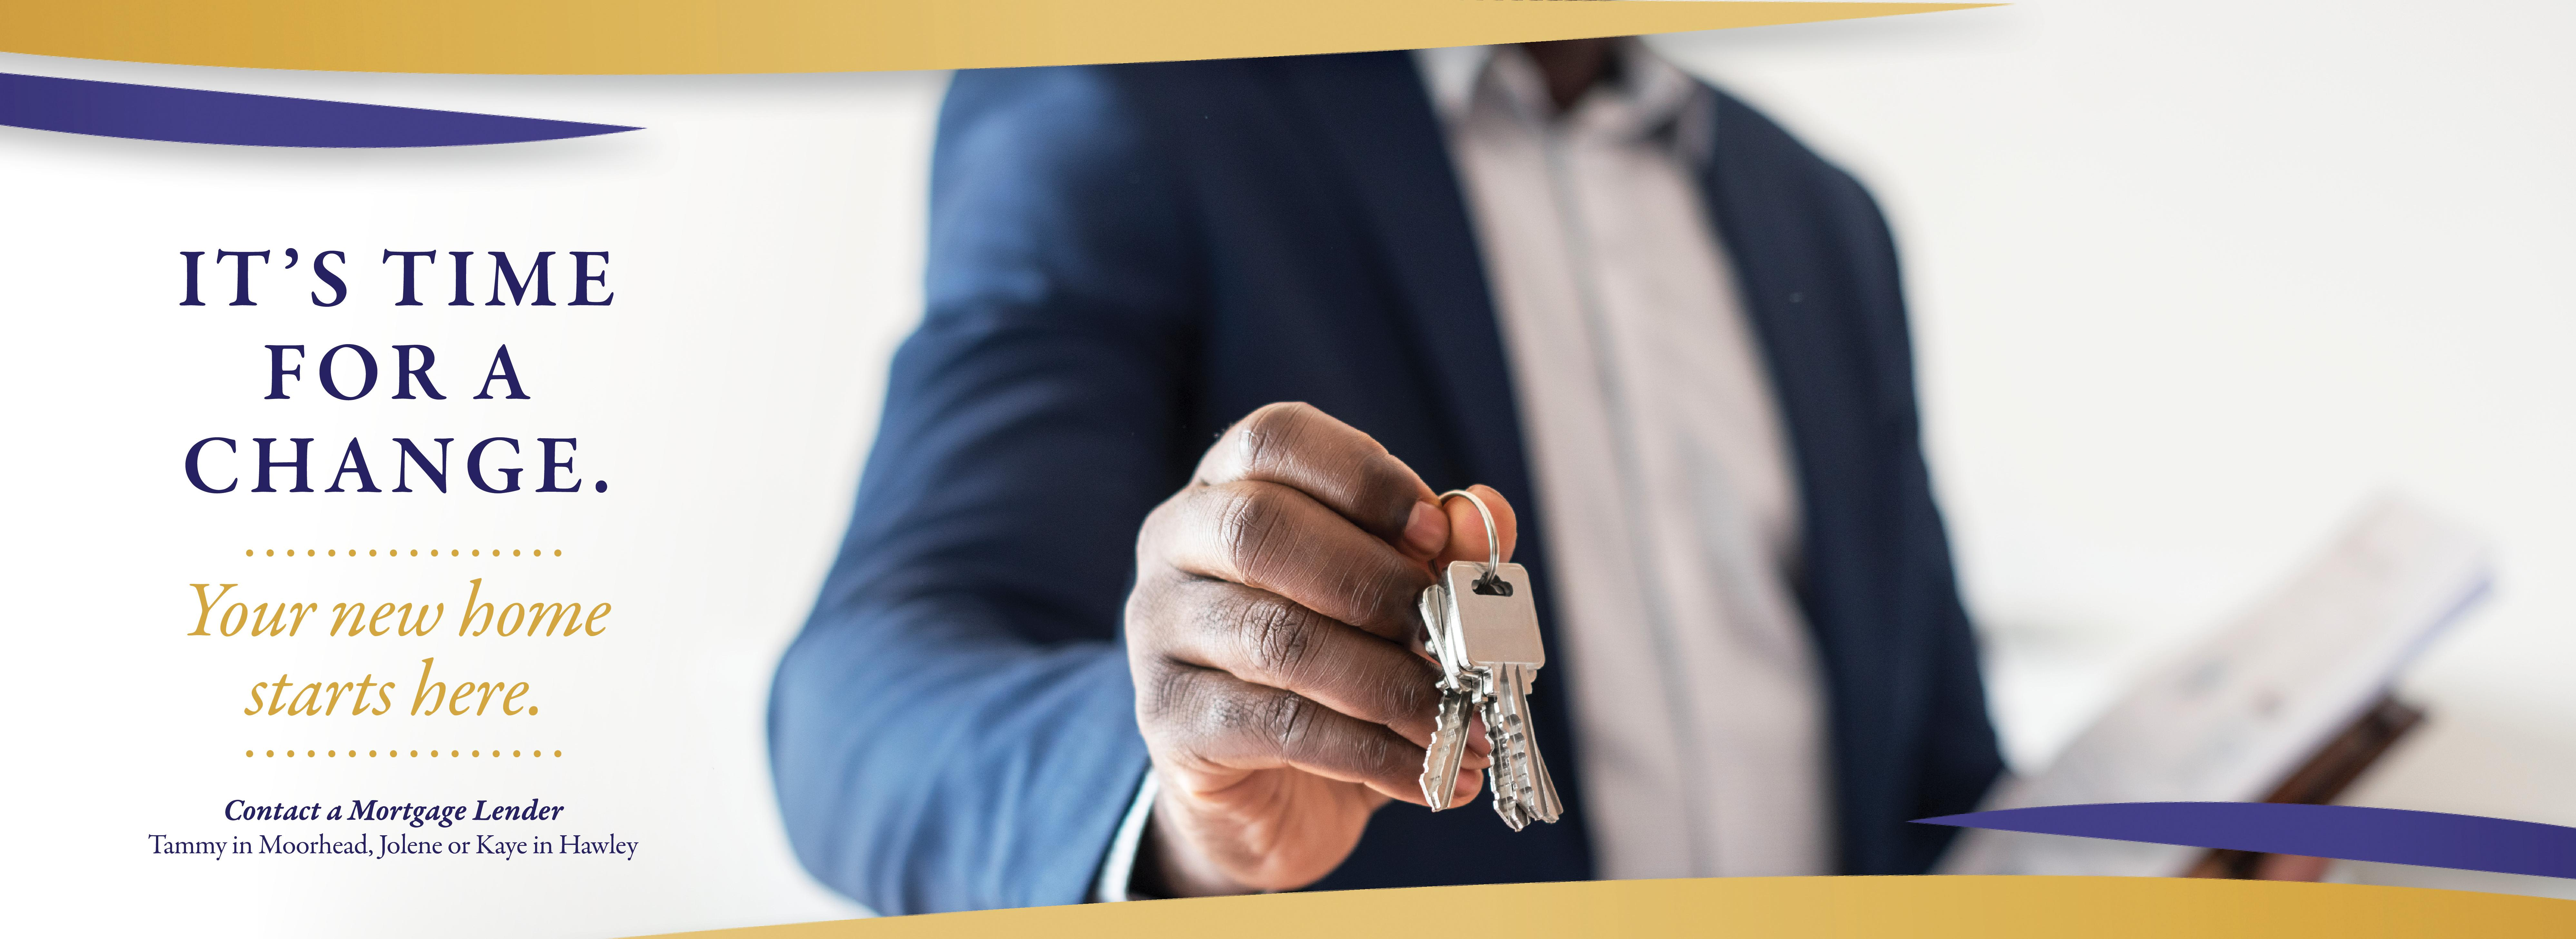 It's time for a change, your new home starts here with image of a man holding keys and paperwork.